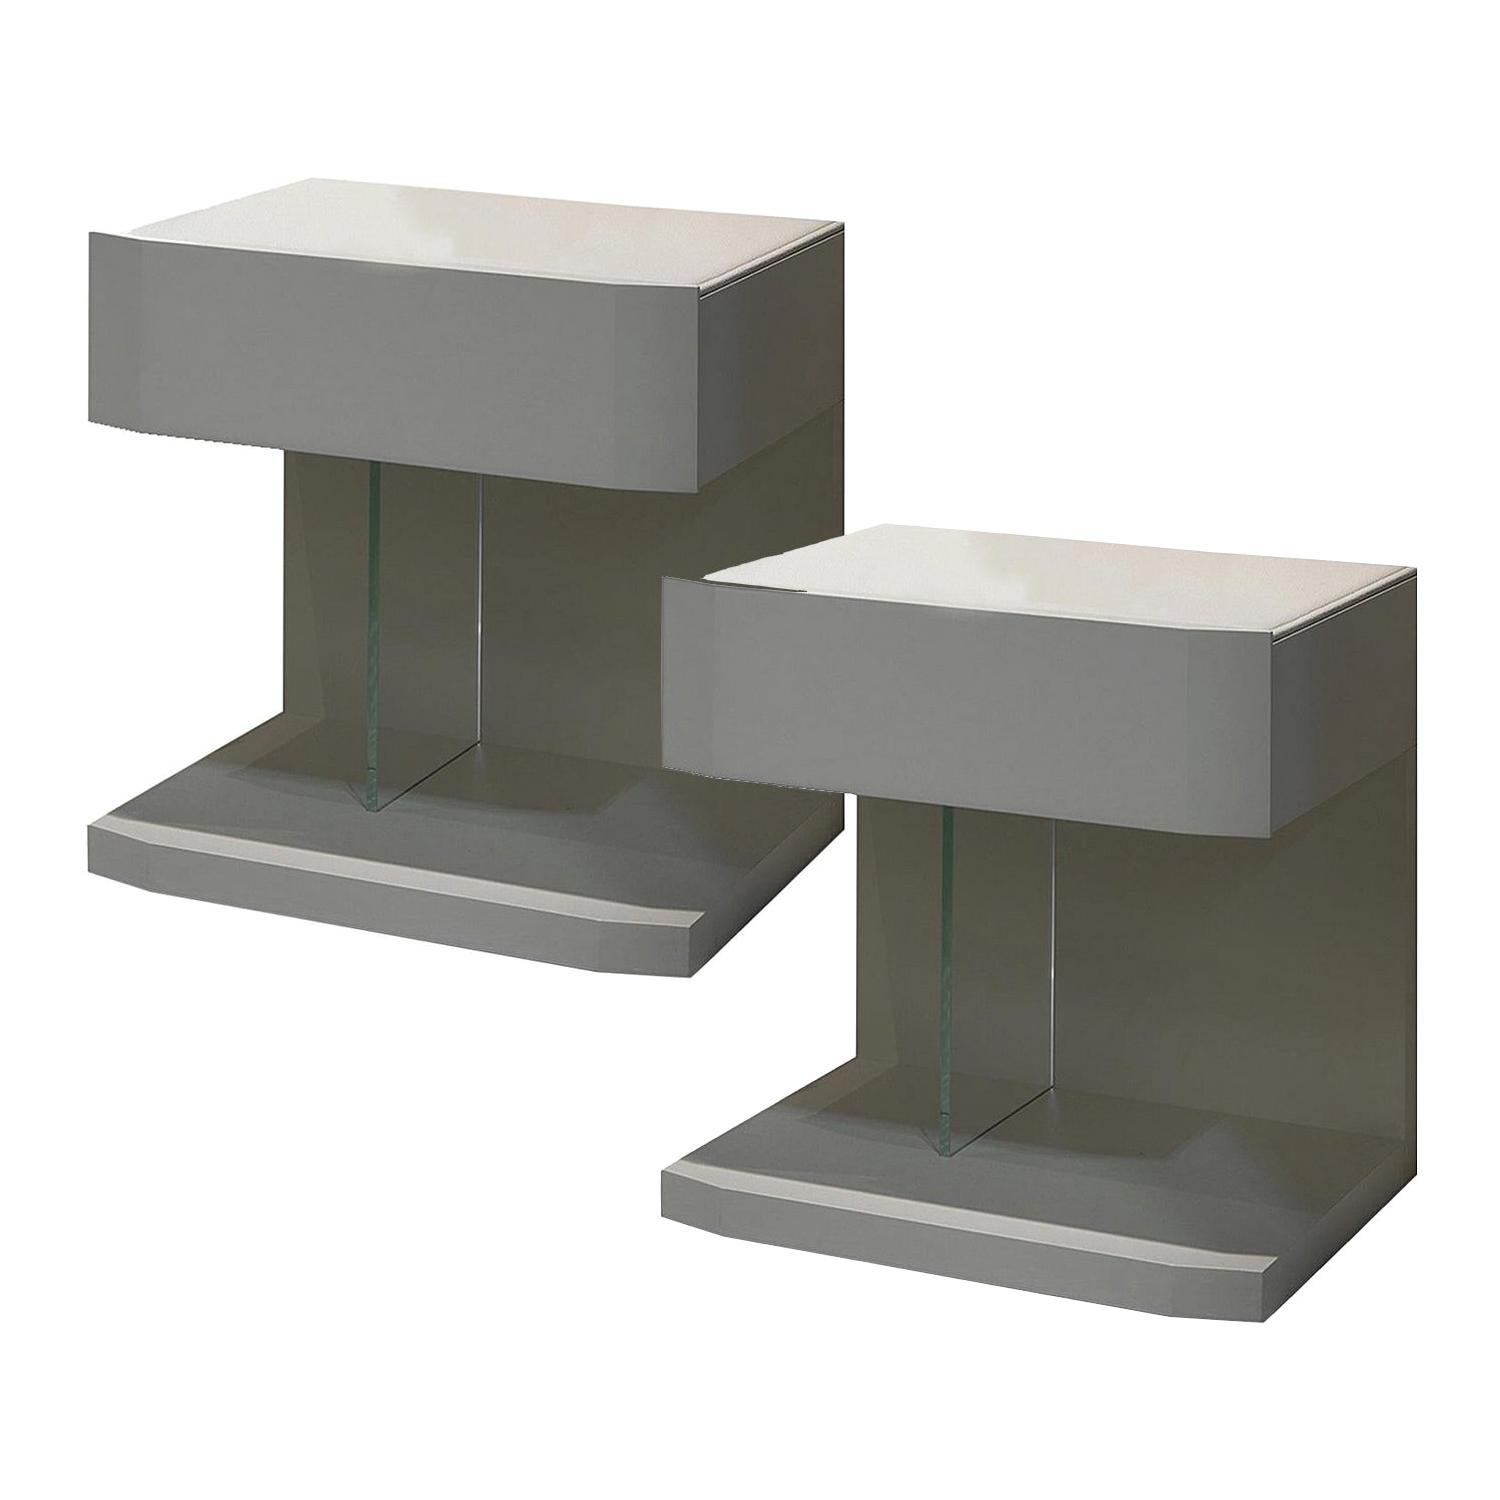 In Stock in Los Angeles, Set of 2 Leather Samar Beige Nightstand Tables